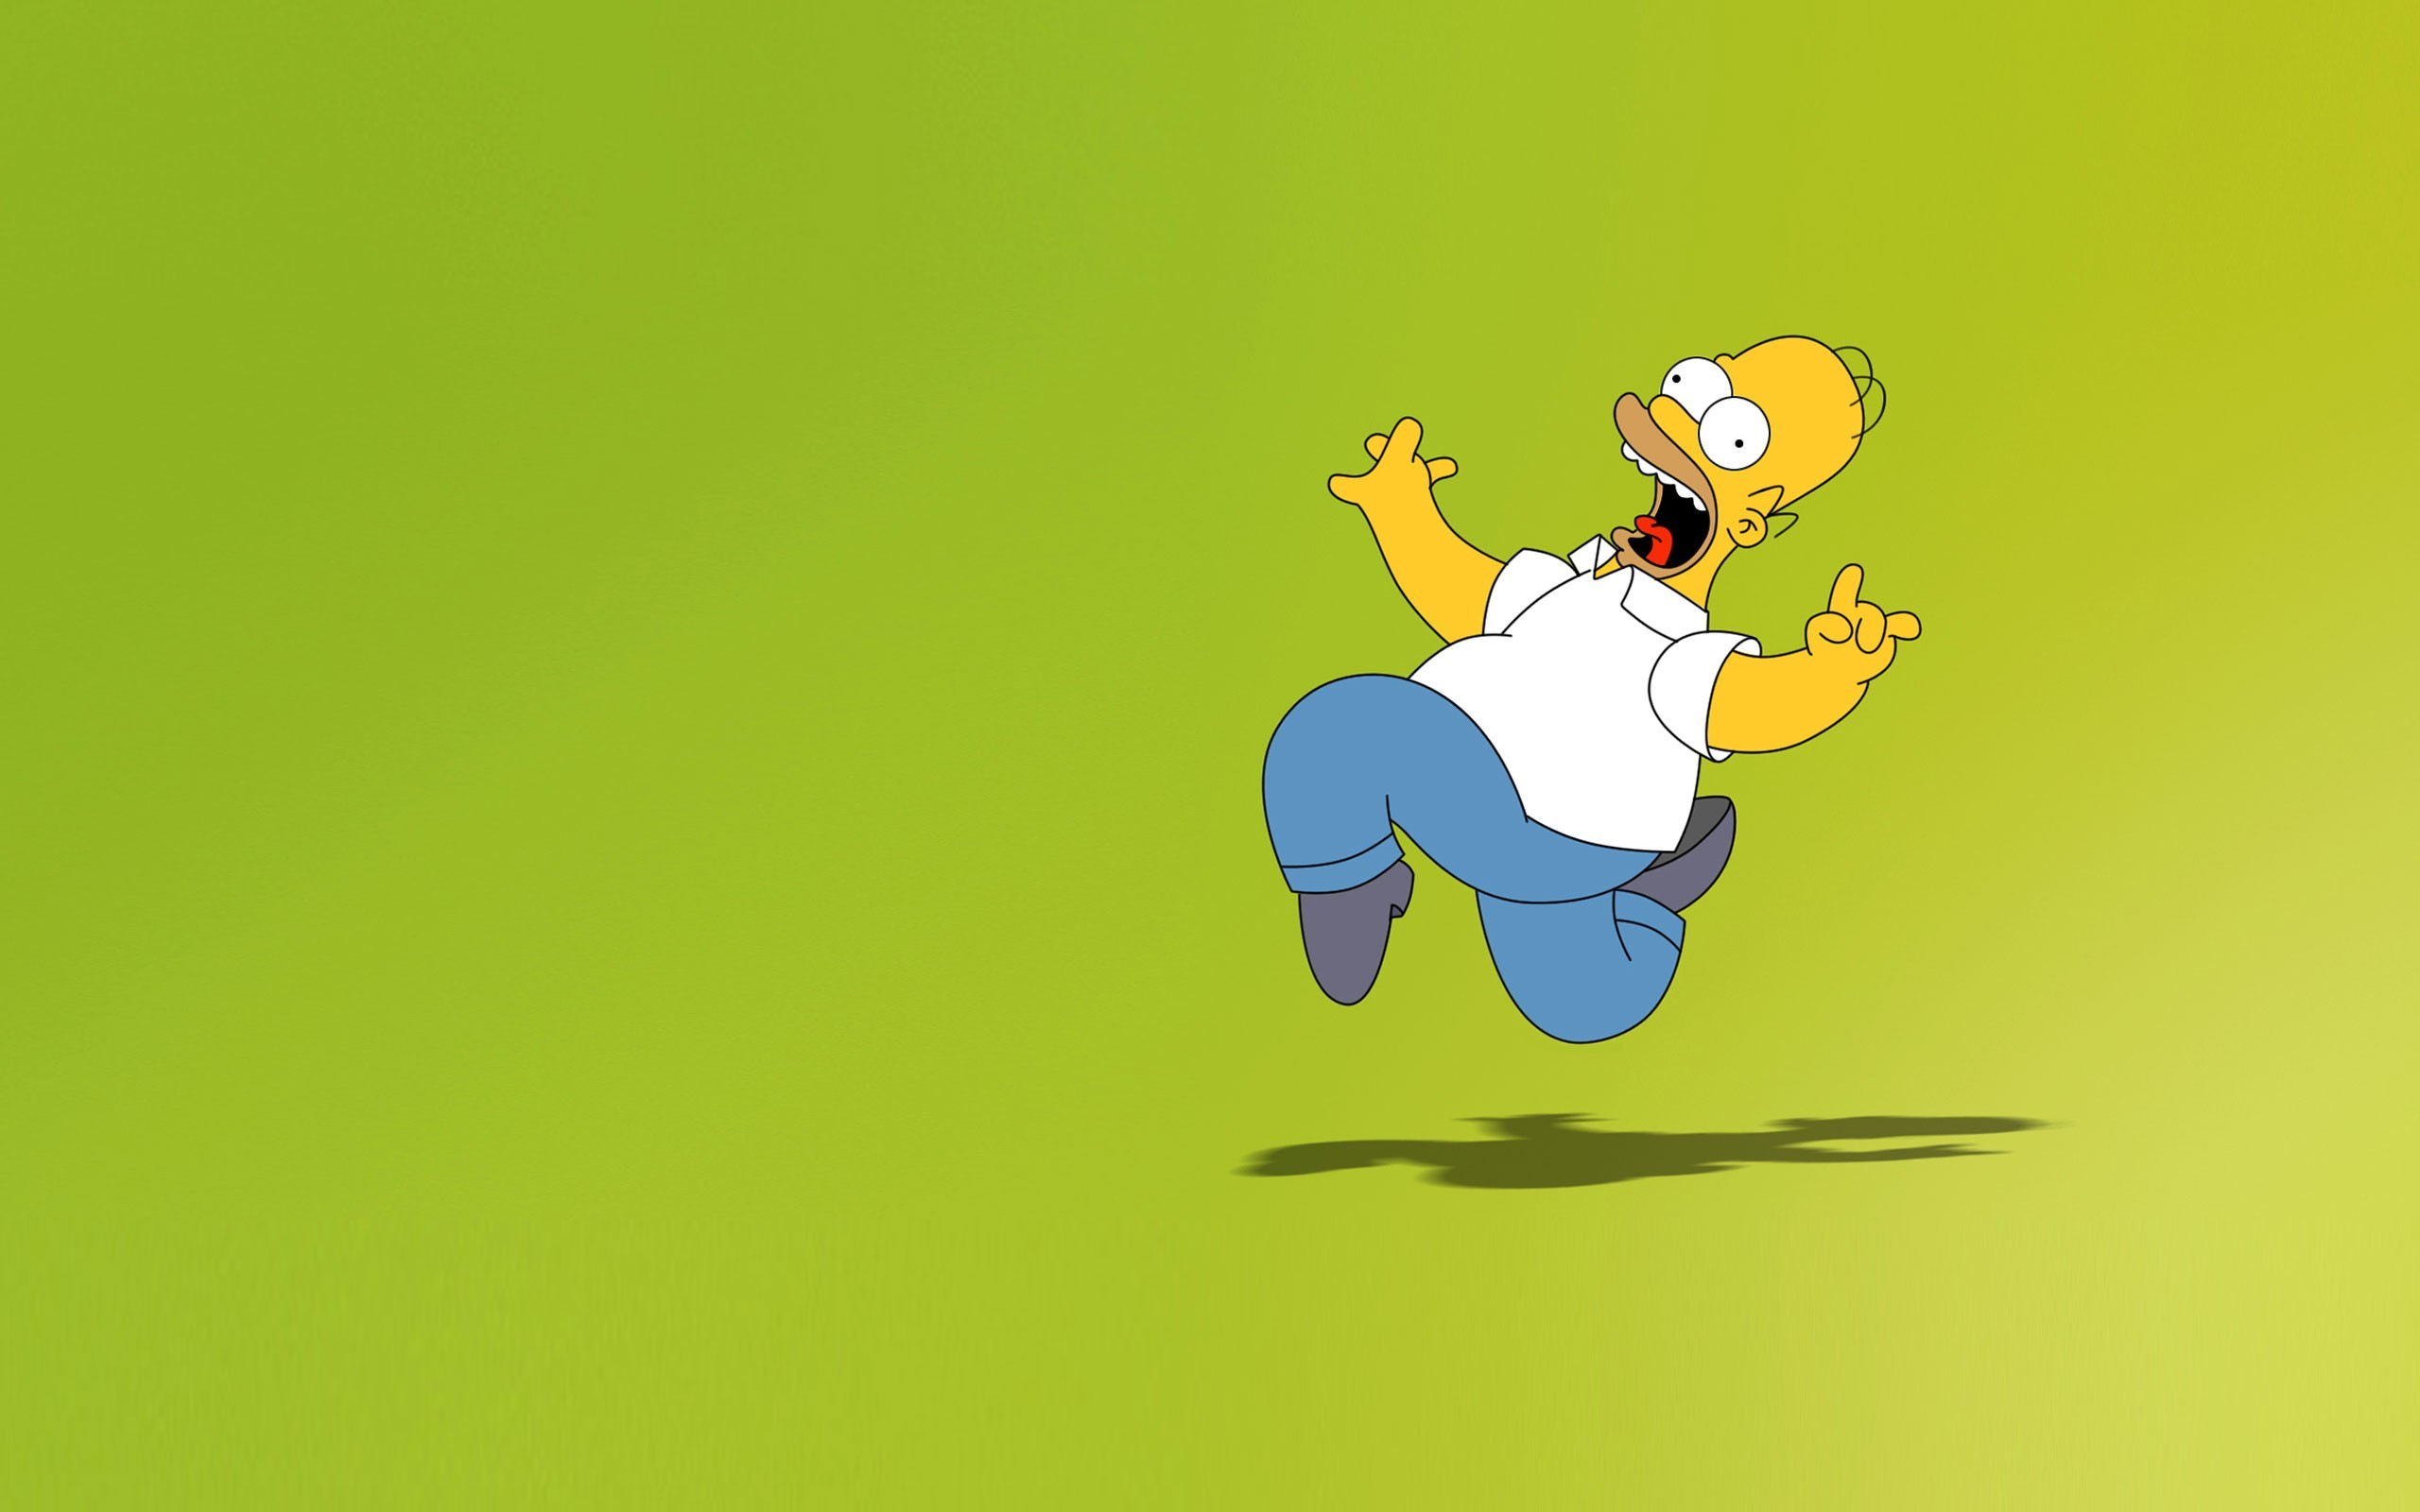 Simpsons Background Wallpapers Simpsons Wallpaper Background Simpsons 2560x1600